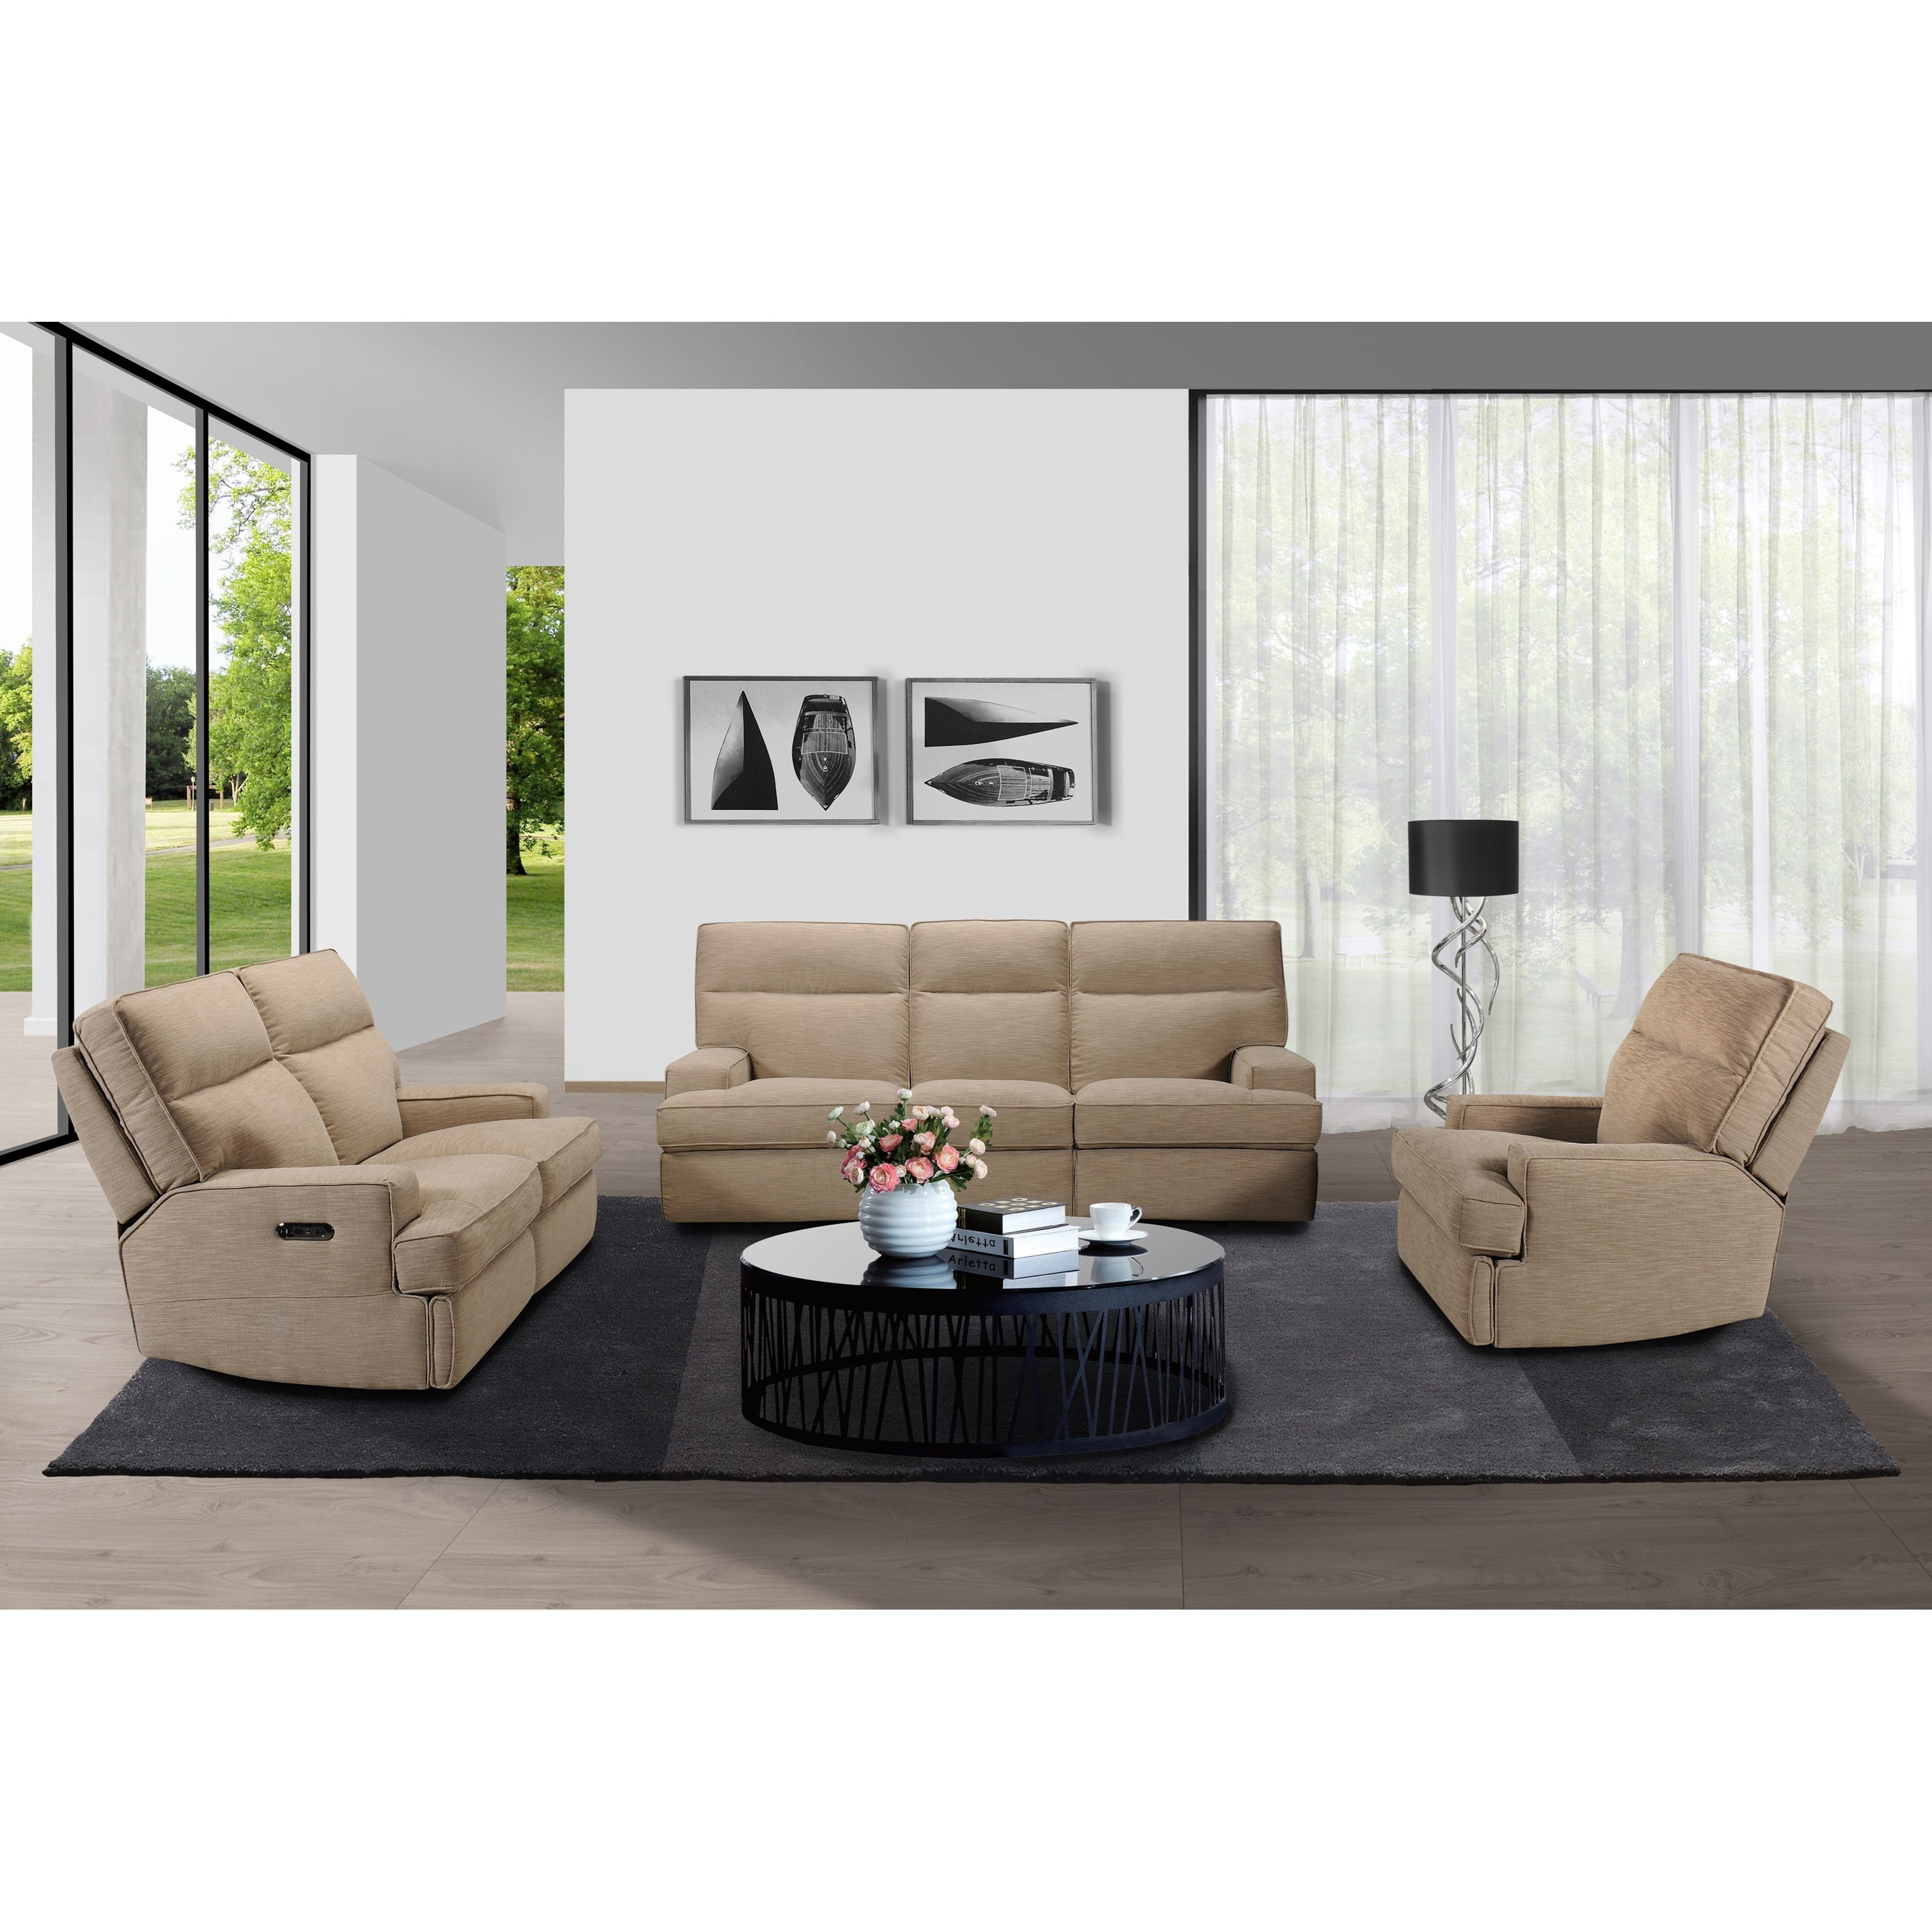 32146 Reclining Living Room Group by Violino at Furniture Superstore - Rochester, MN